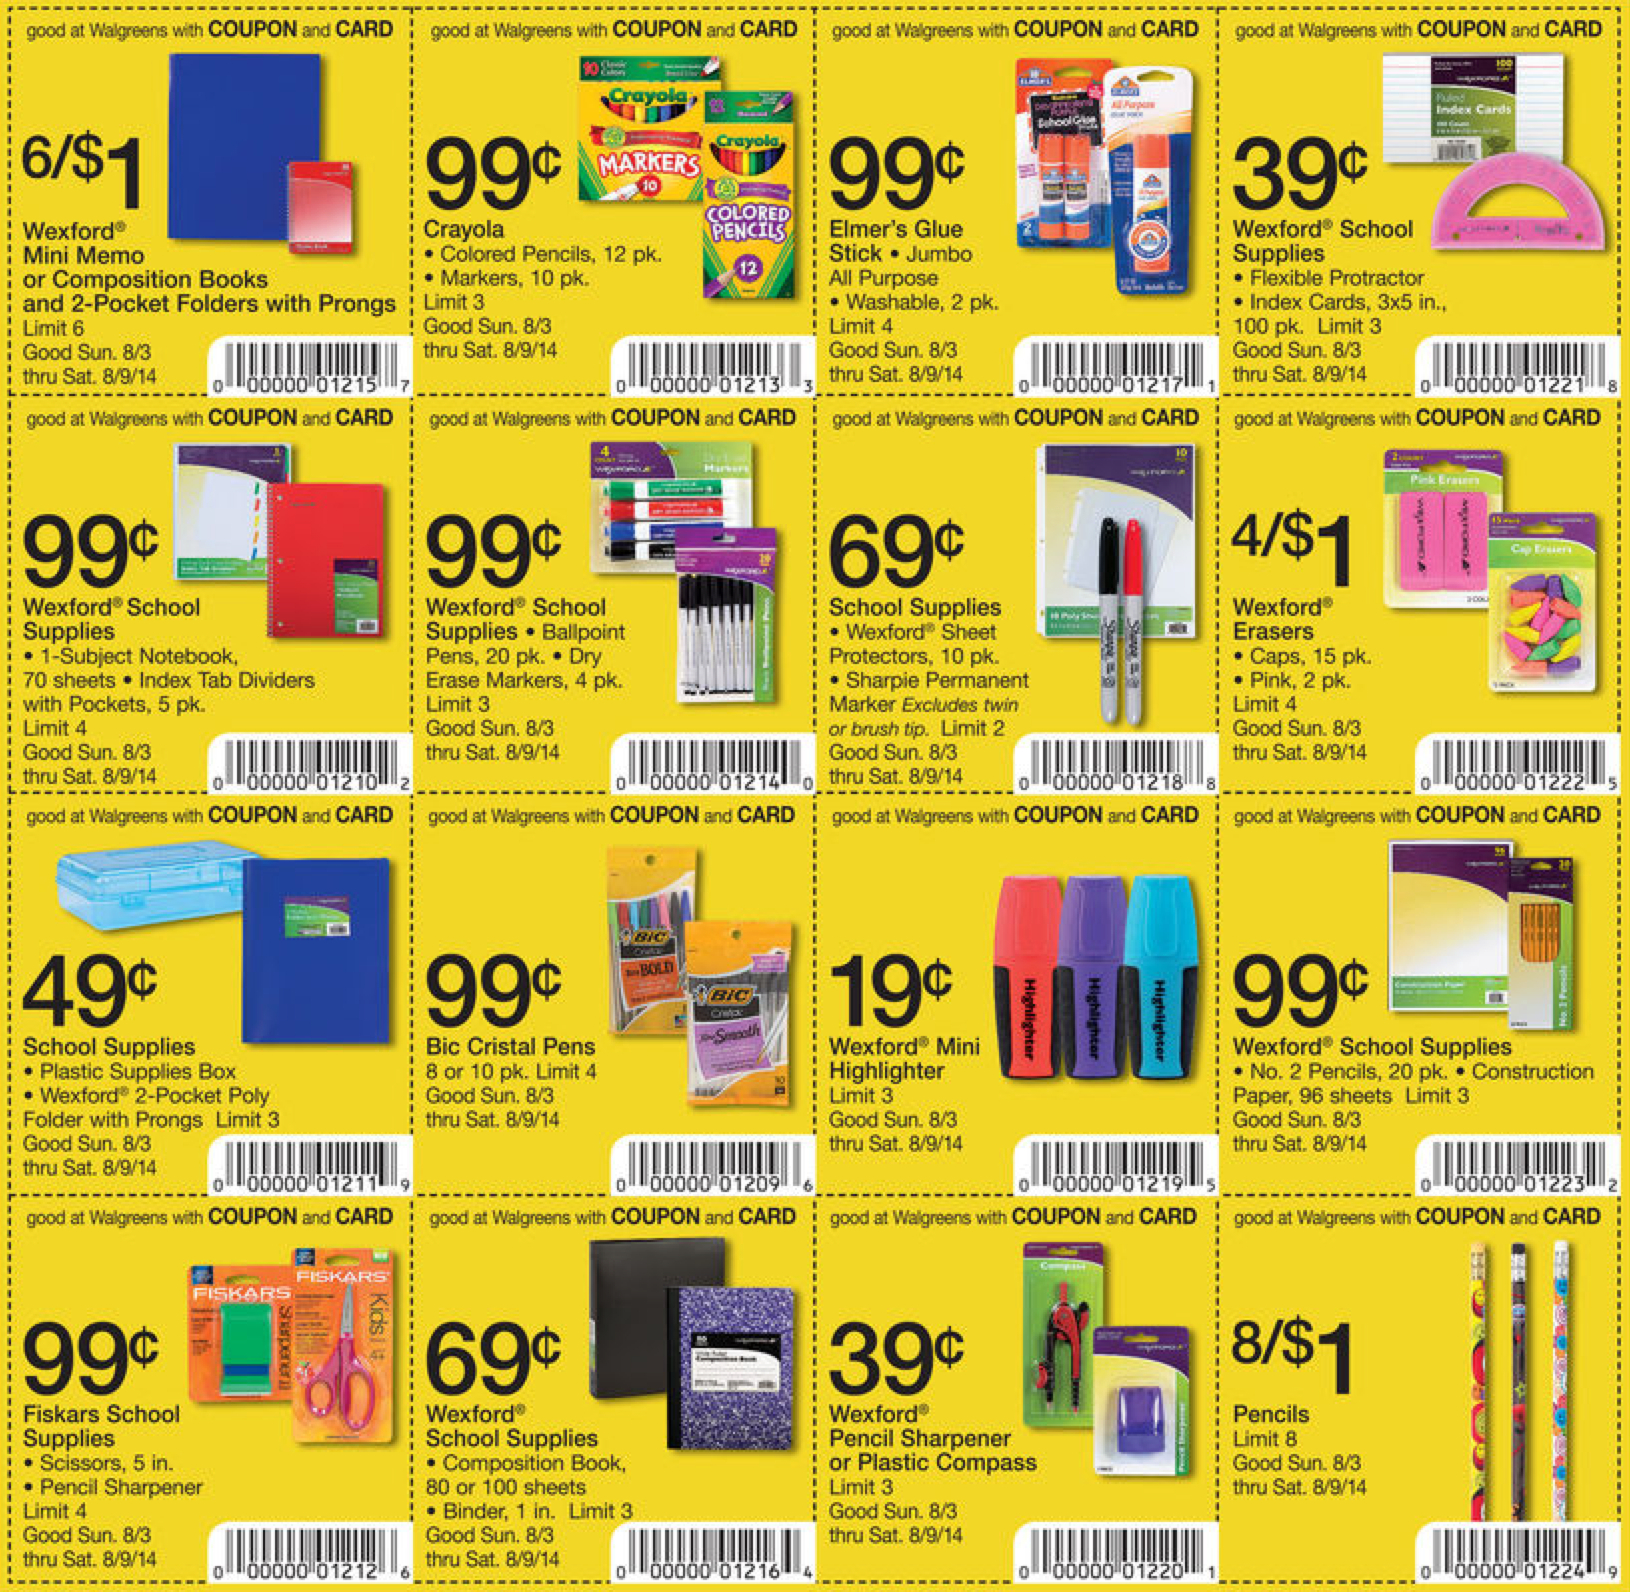 Free Printable Coupons For School Supplies 2018 - Perfume Coupons - Free Printable Coupons For School Supplies At Walmart